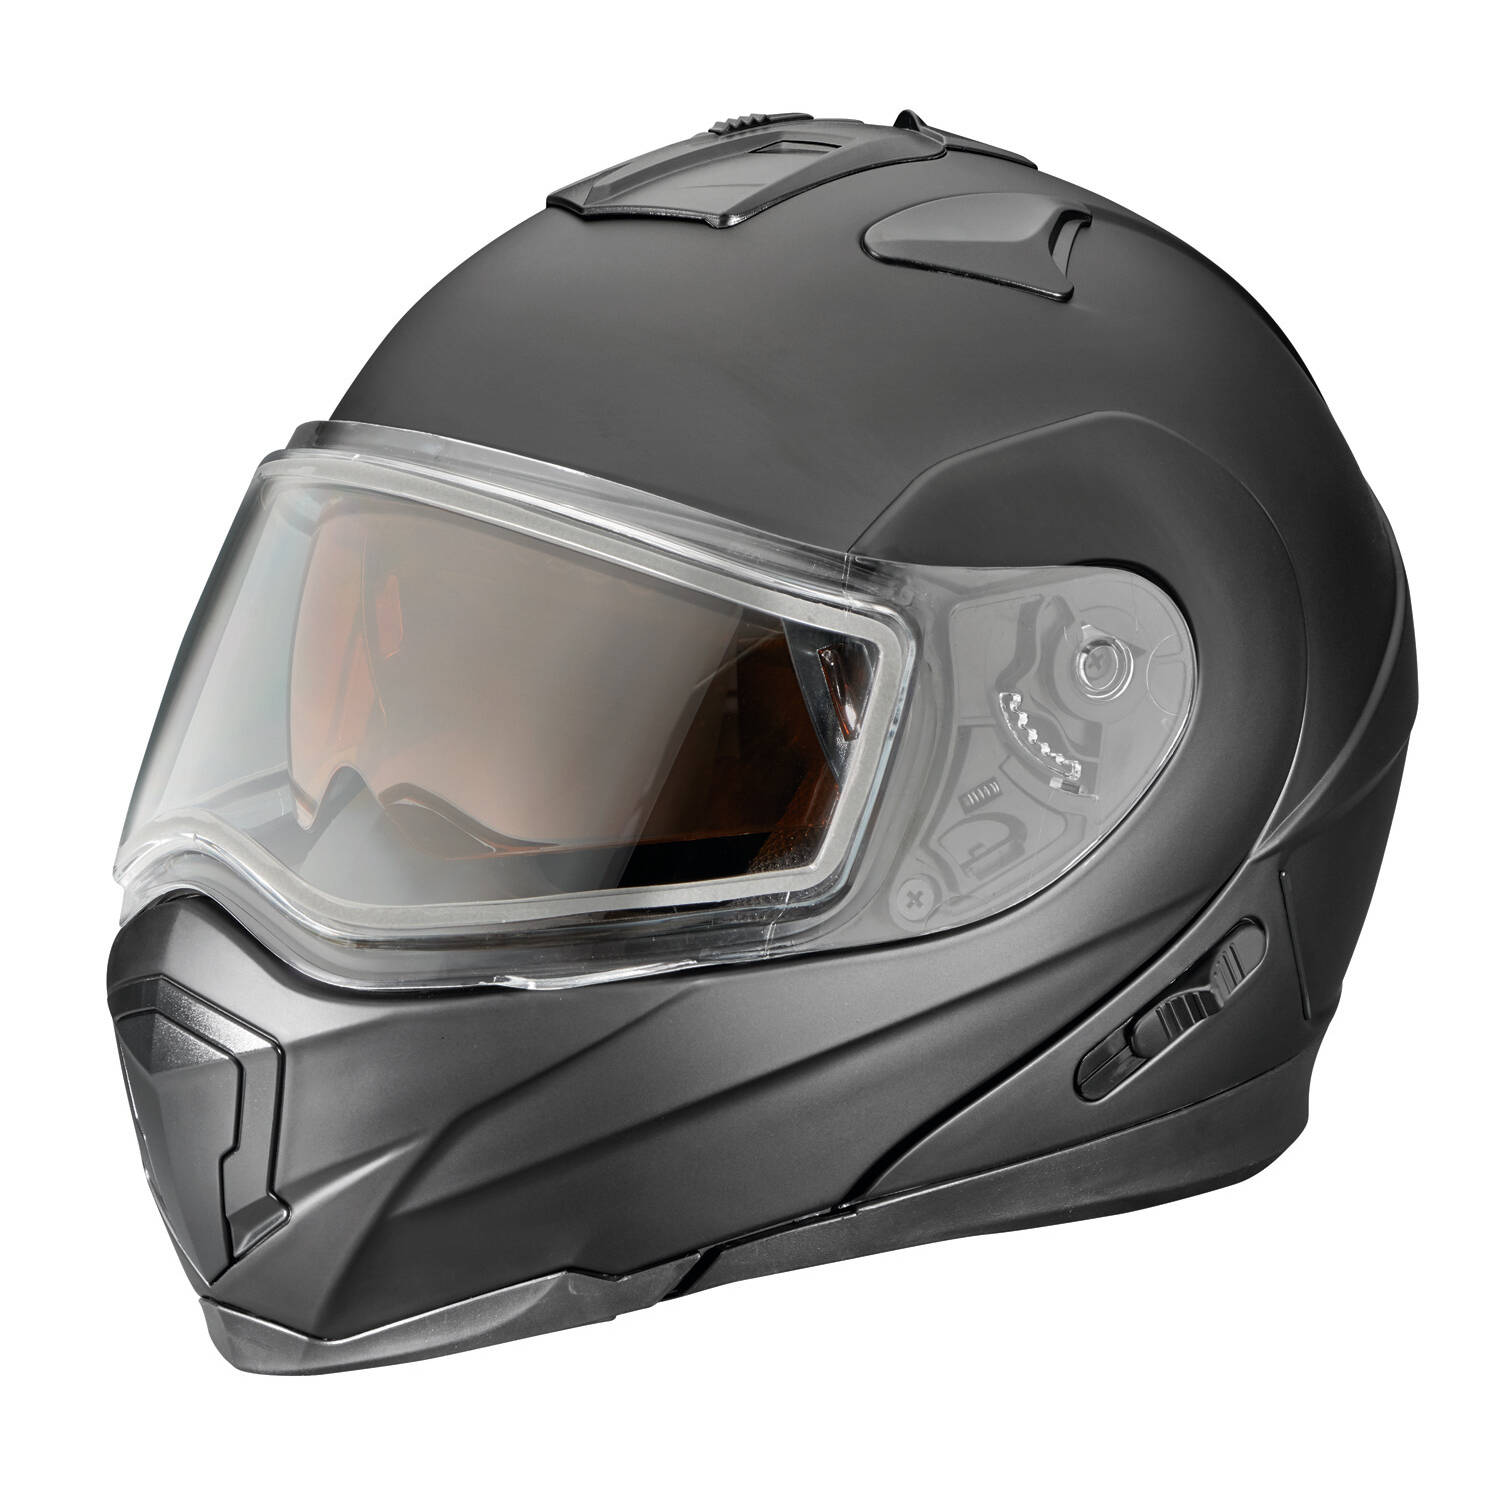 Modular 1.5 Adult Helmet with Flip Down Shield, Black Matte